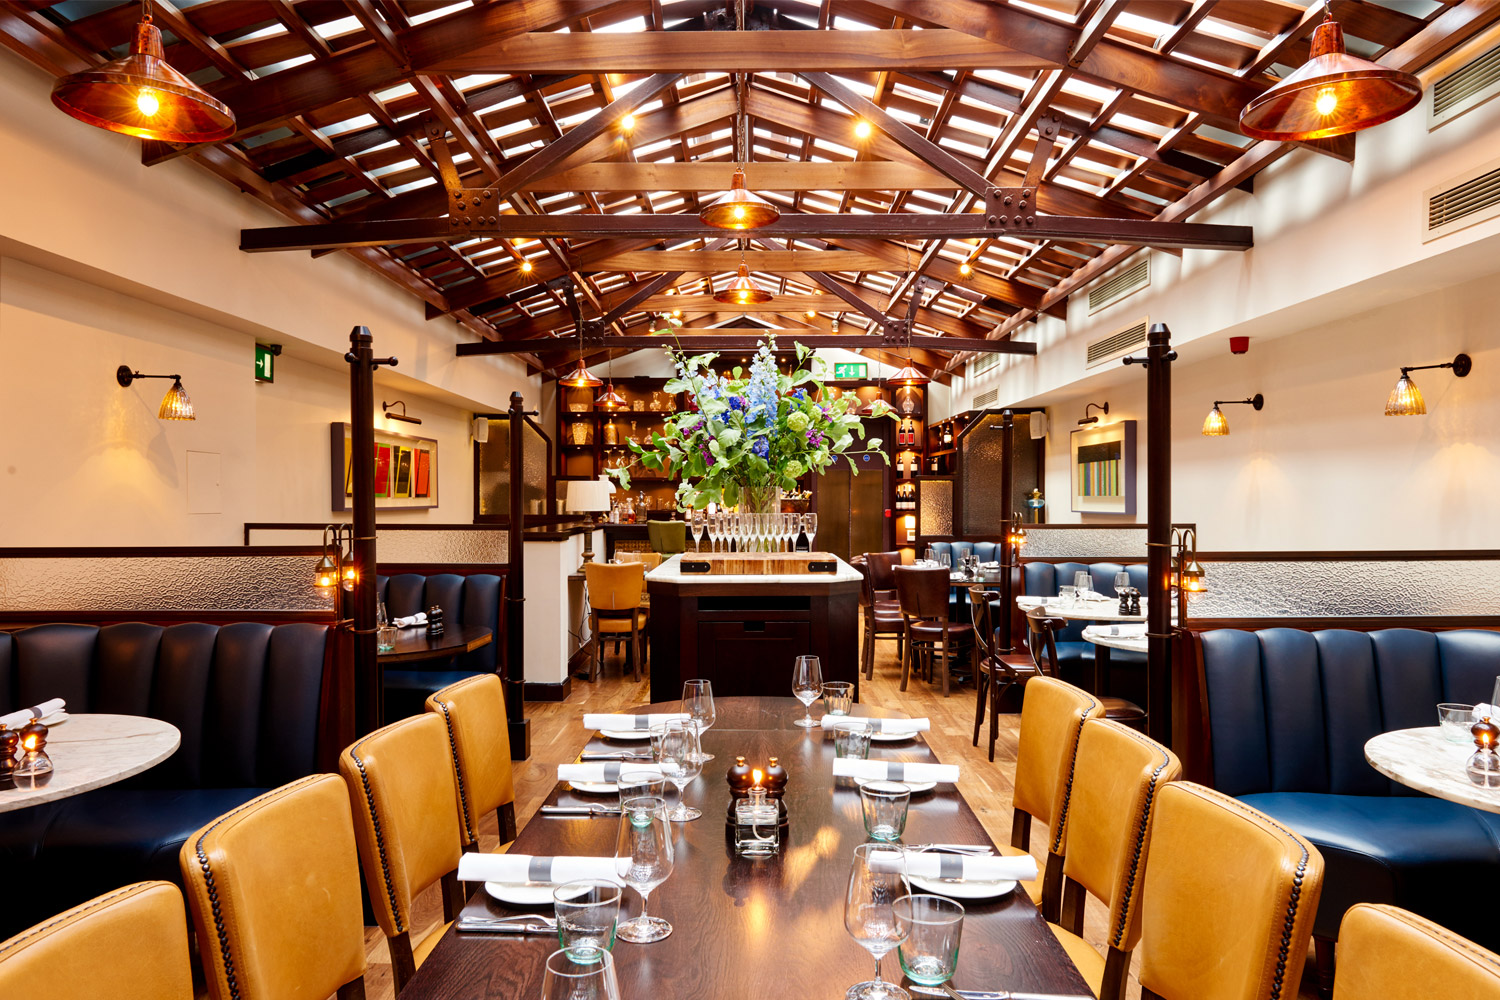 La Credenza Food London : This weeks feature restaurant: café murano london truth love